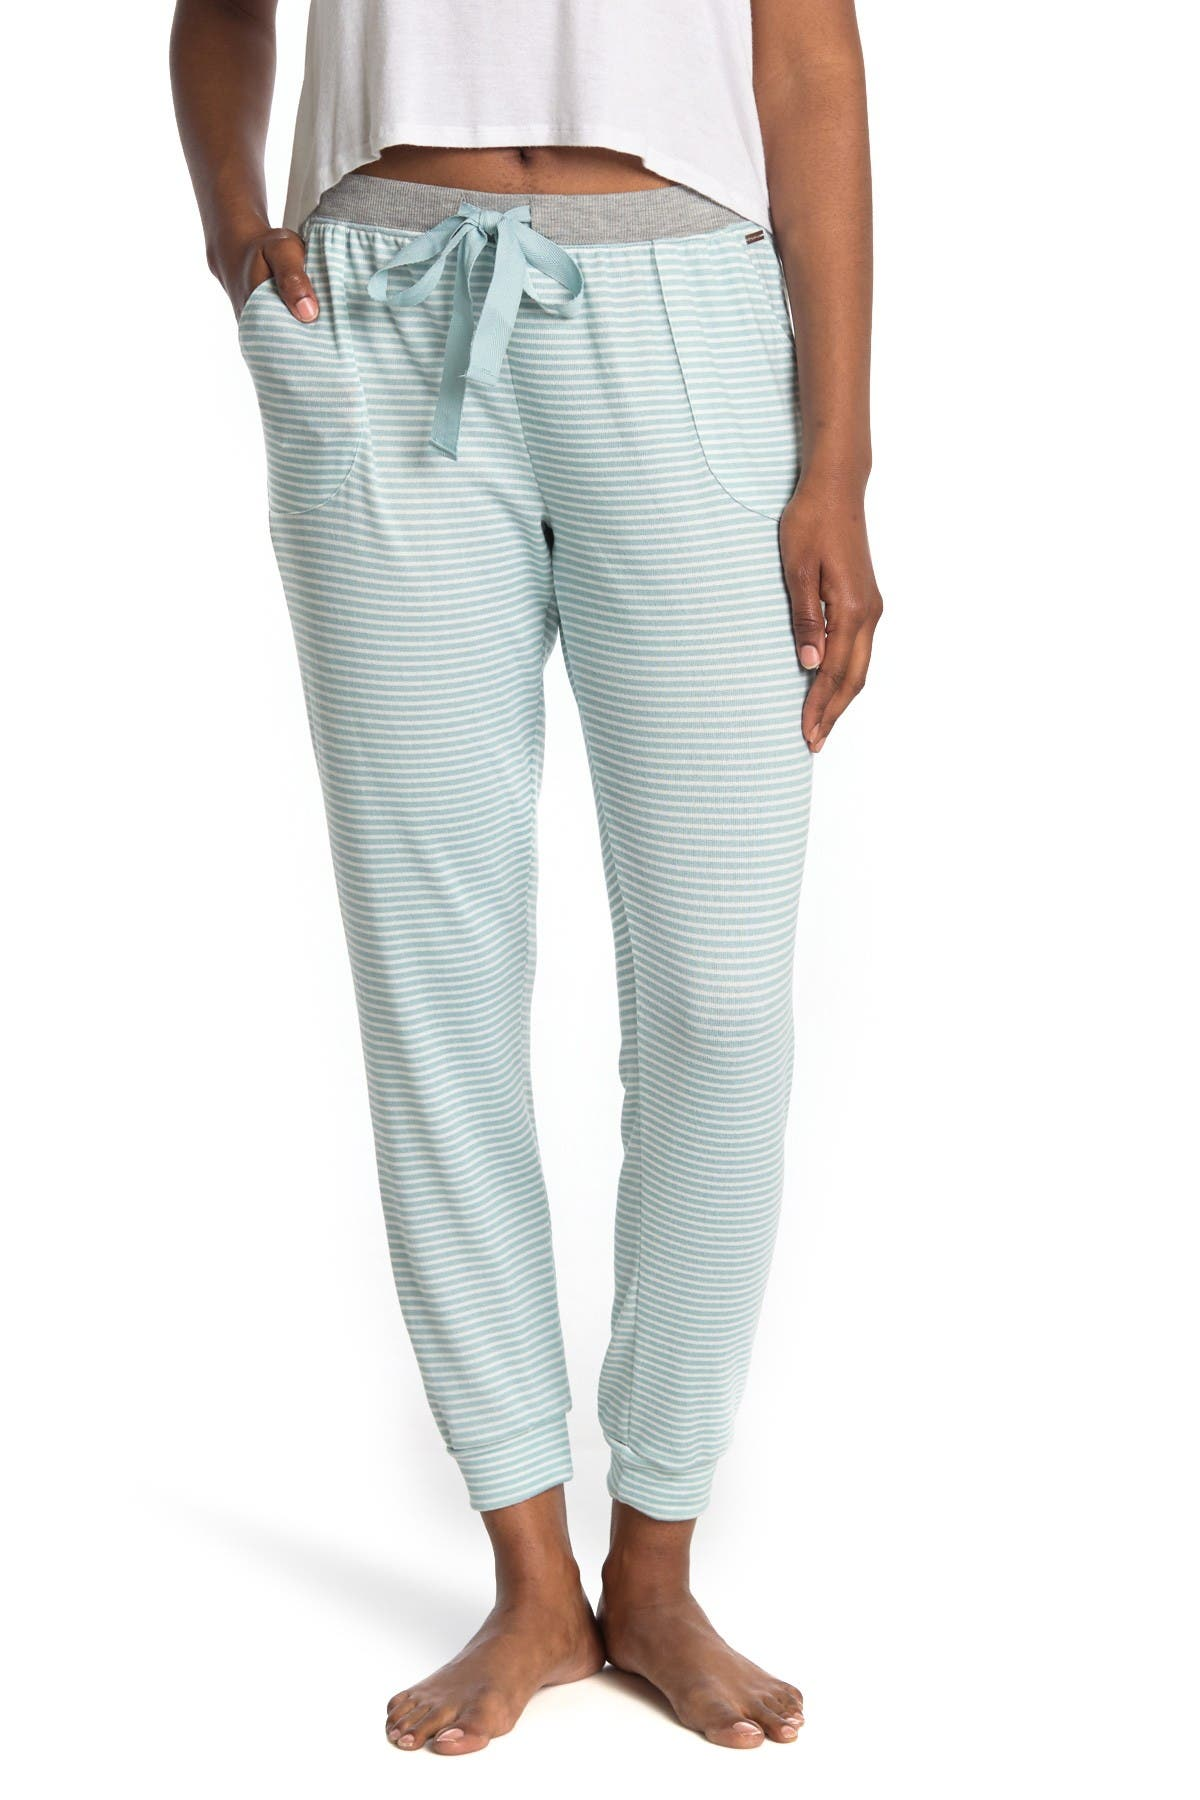 Image of Tahari Pocket Pajama Joggers